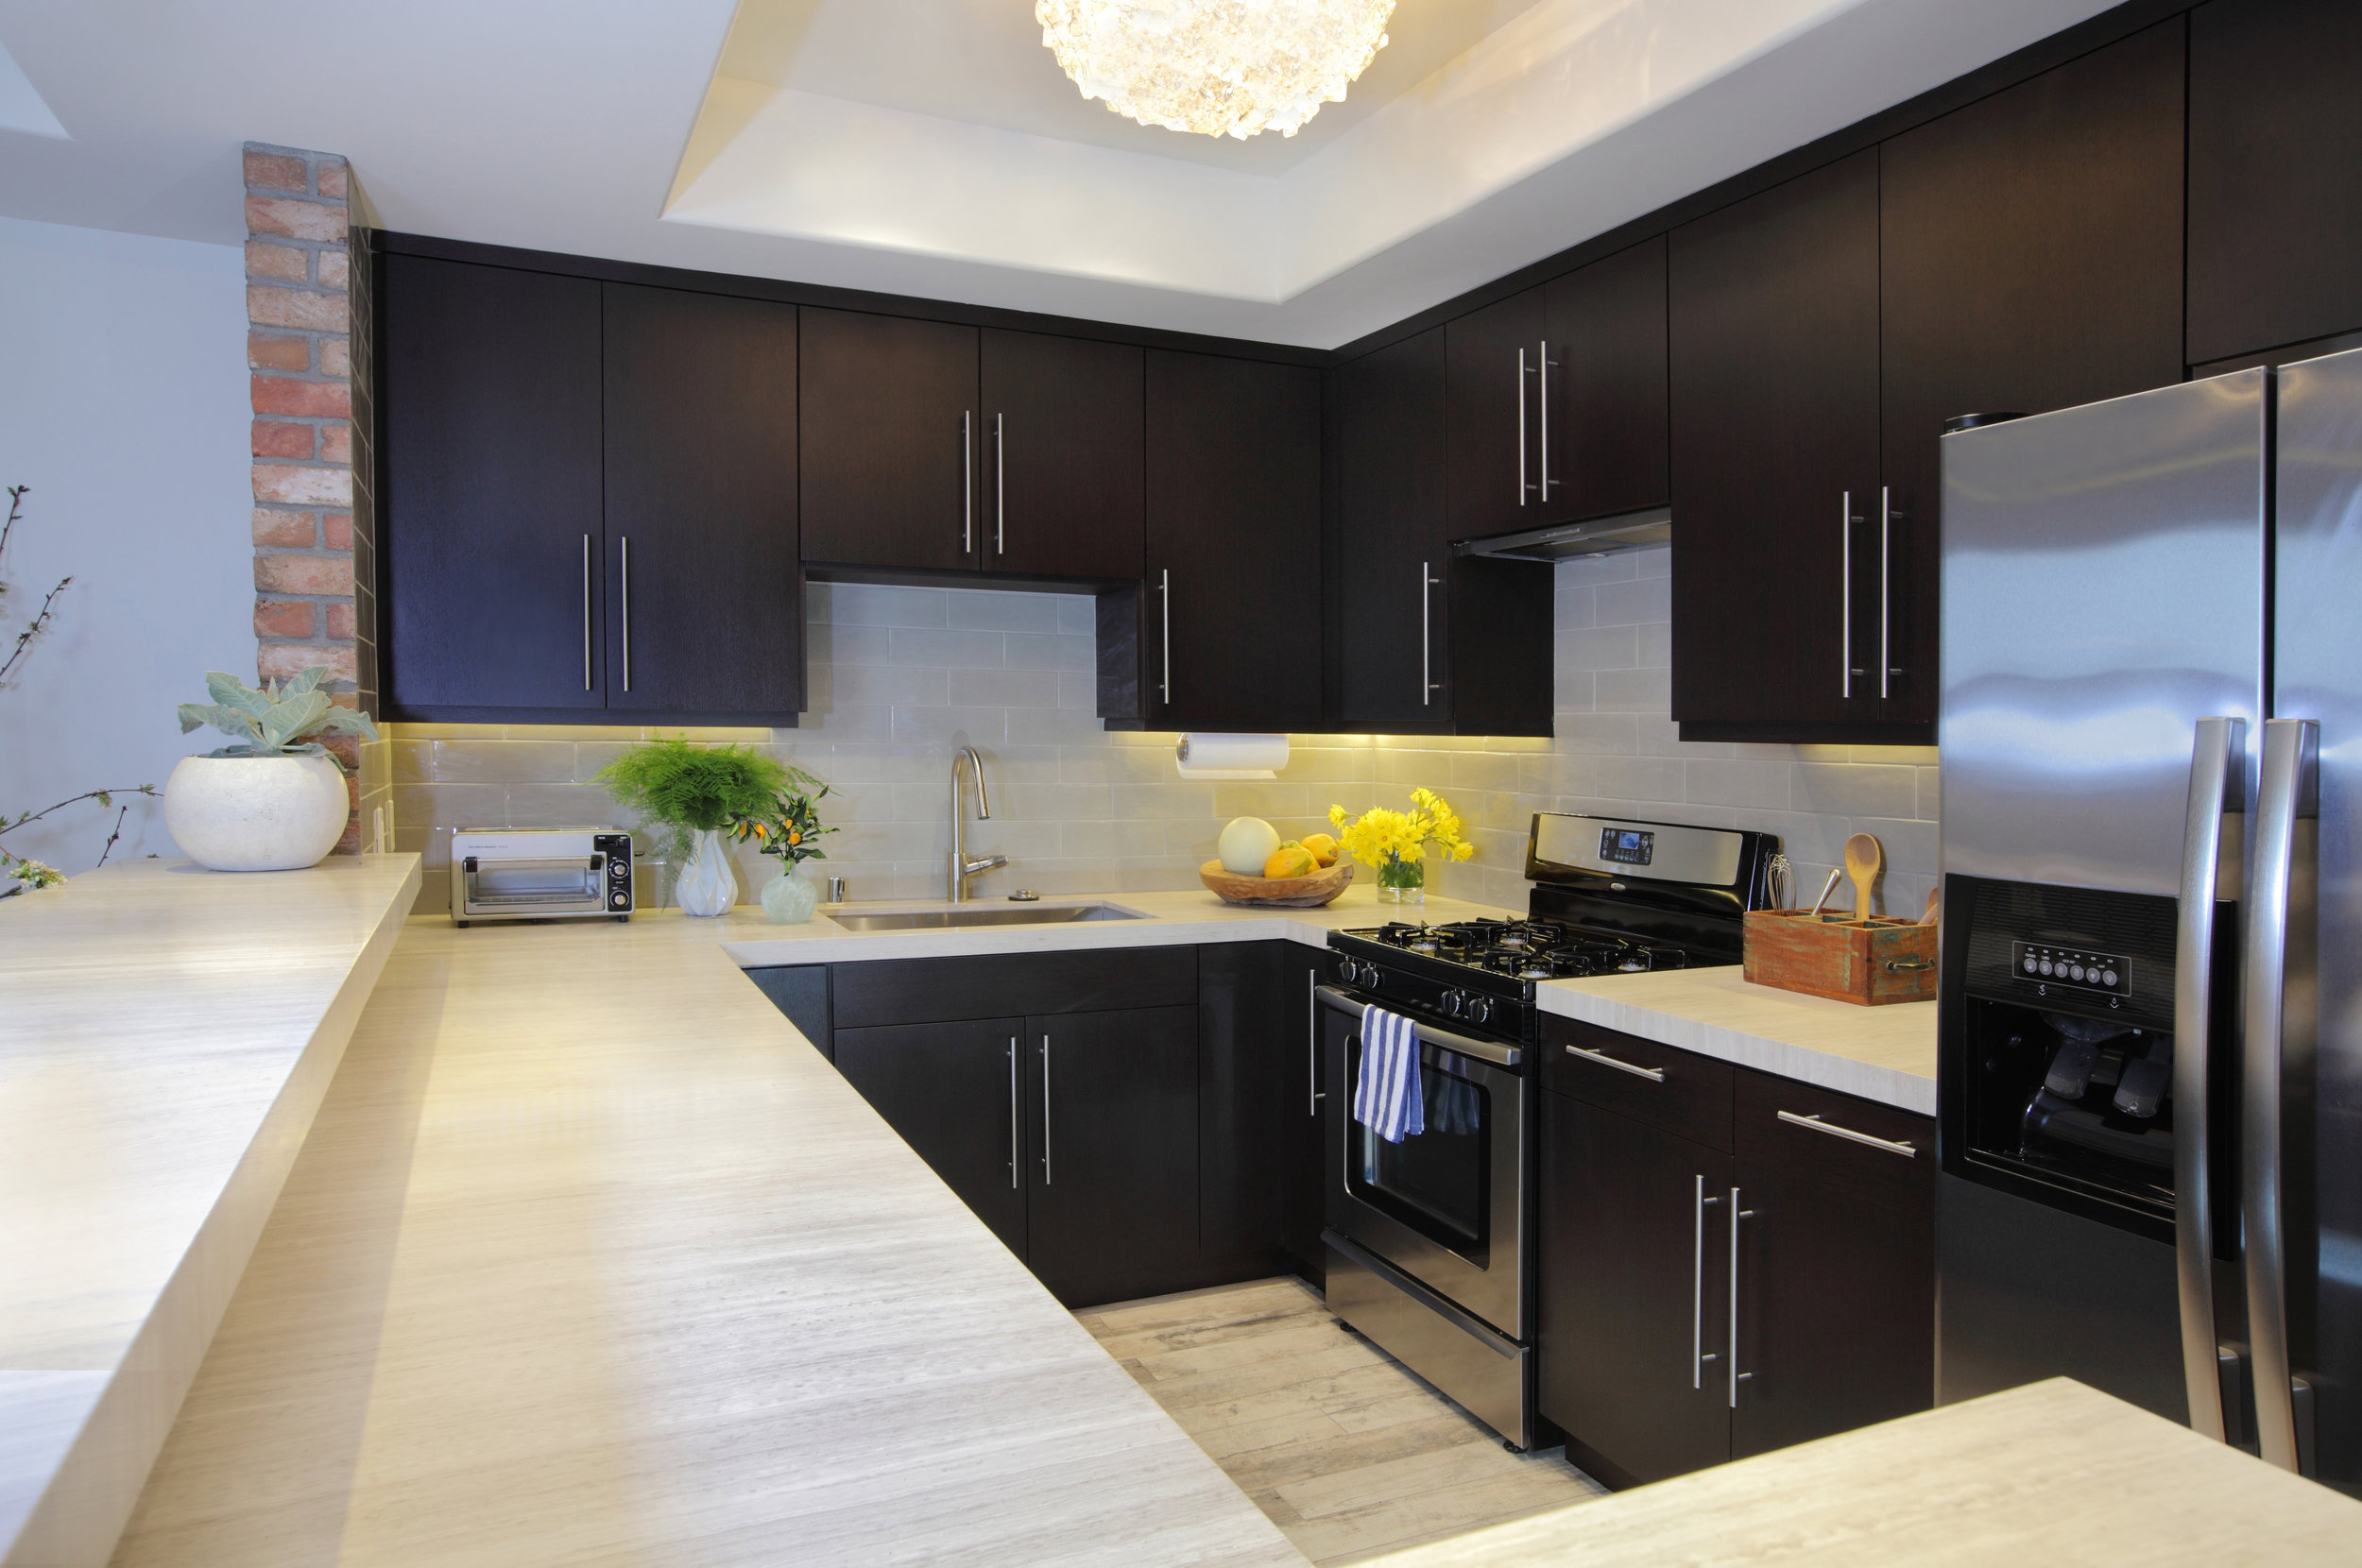 Sarah-barnard-design-modern-luxury-kitchen.jpg